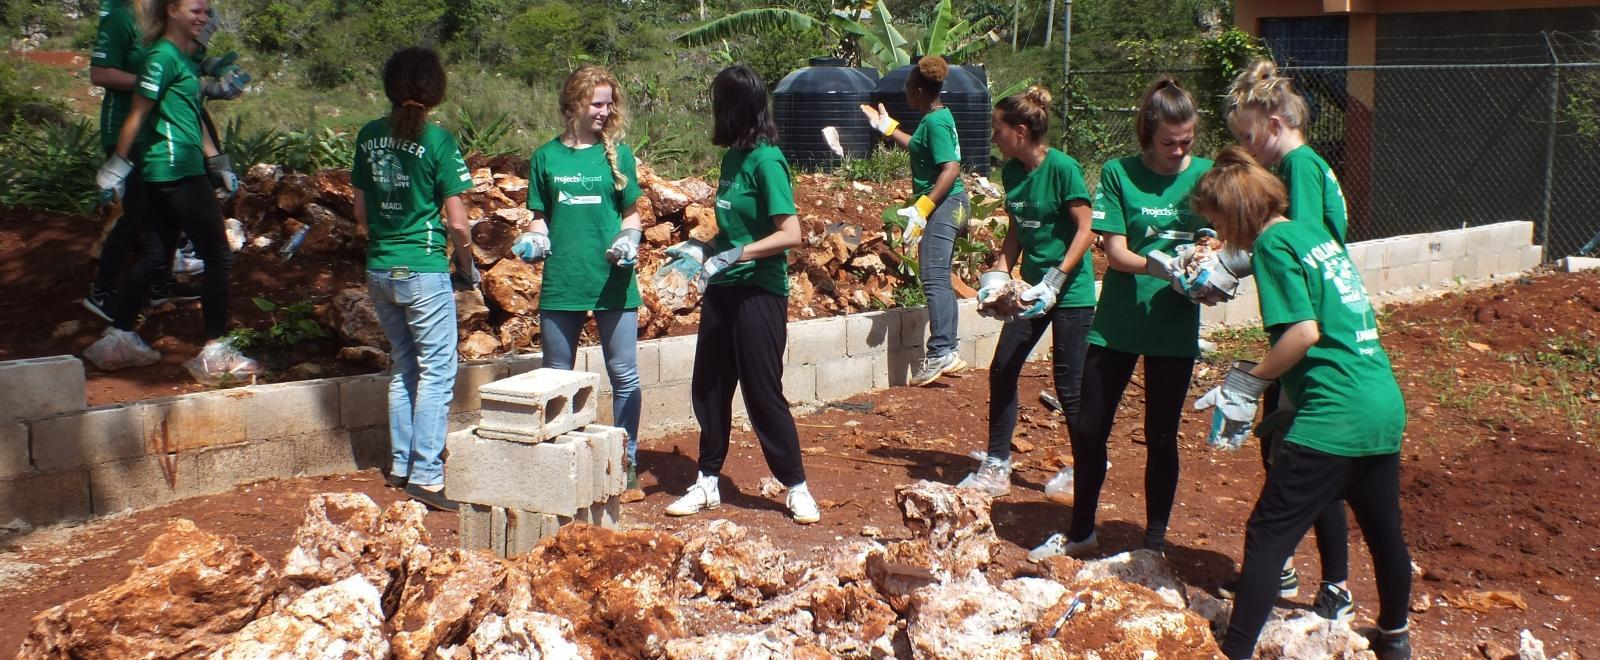 A group of people clear ground for a new playground at a disadvantaged school during their short-term volunteer trip to Jamaica.